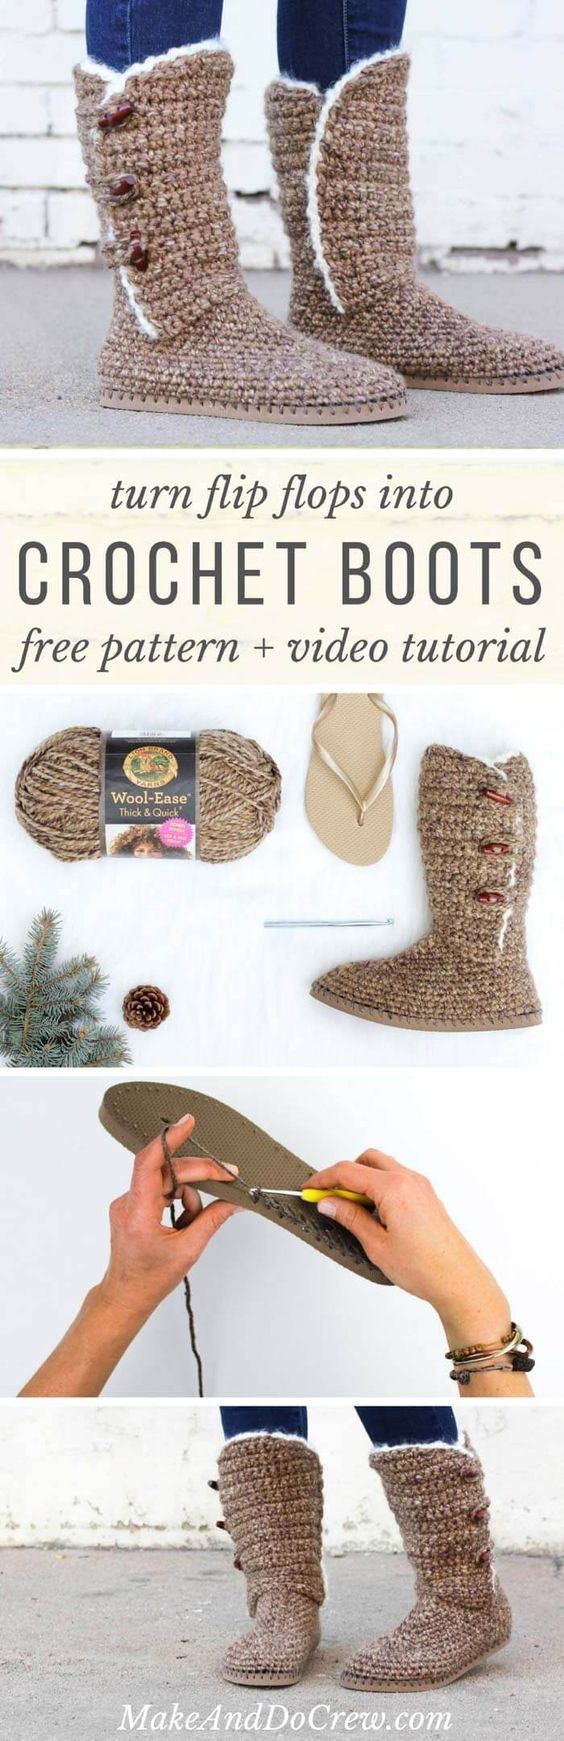 Crochet Boots With Flip Flop Soles - Free Pattern + Video | Tejido ...